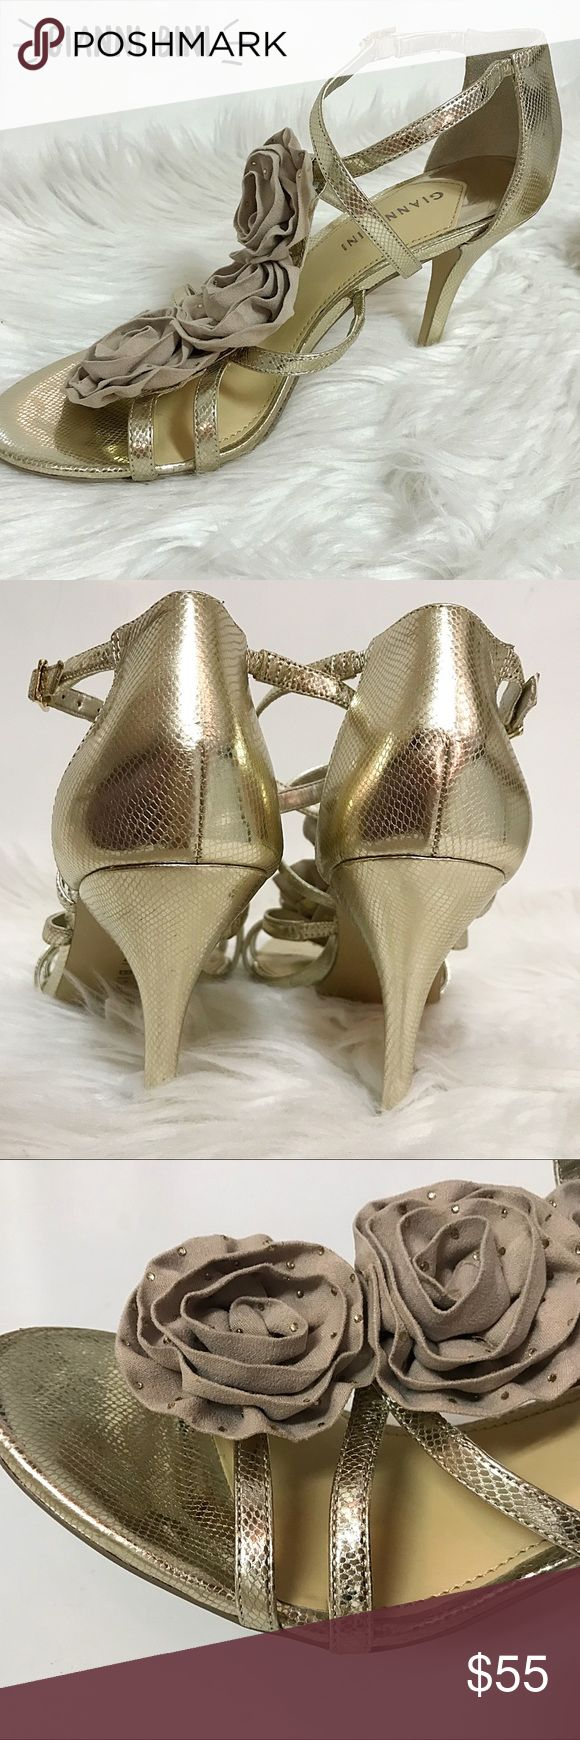 Gianni BINI Gold Snake Patterned Leather Heels New Gianni BINI Gold Snake Patterned Leather Heels New ~ NWOT Gianni Bini Shoes Heels